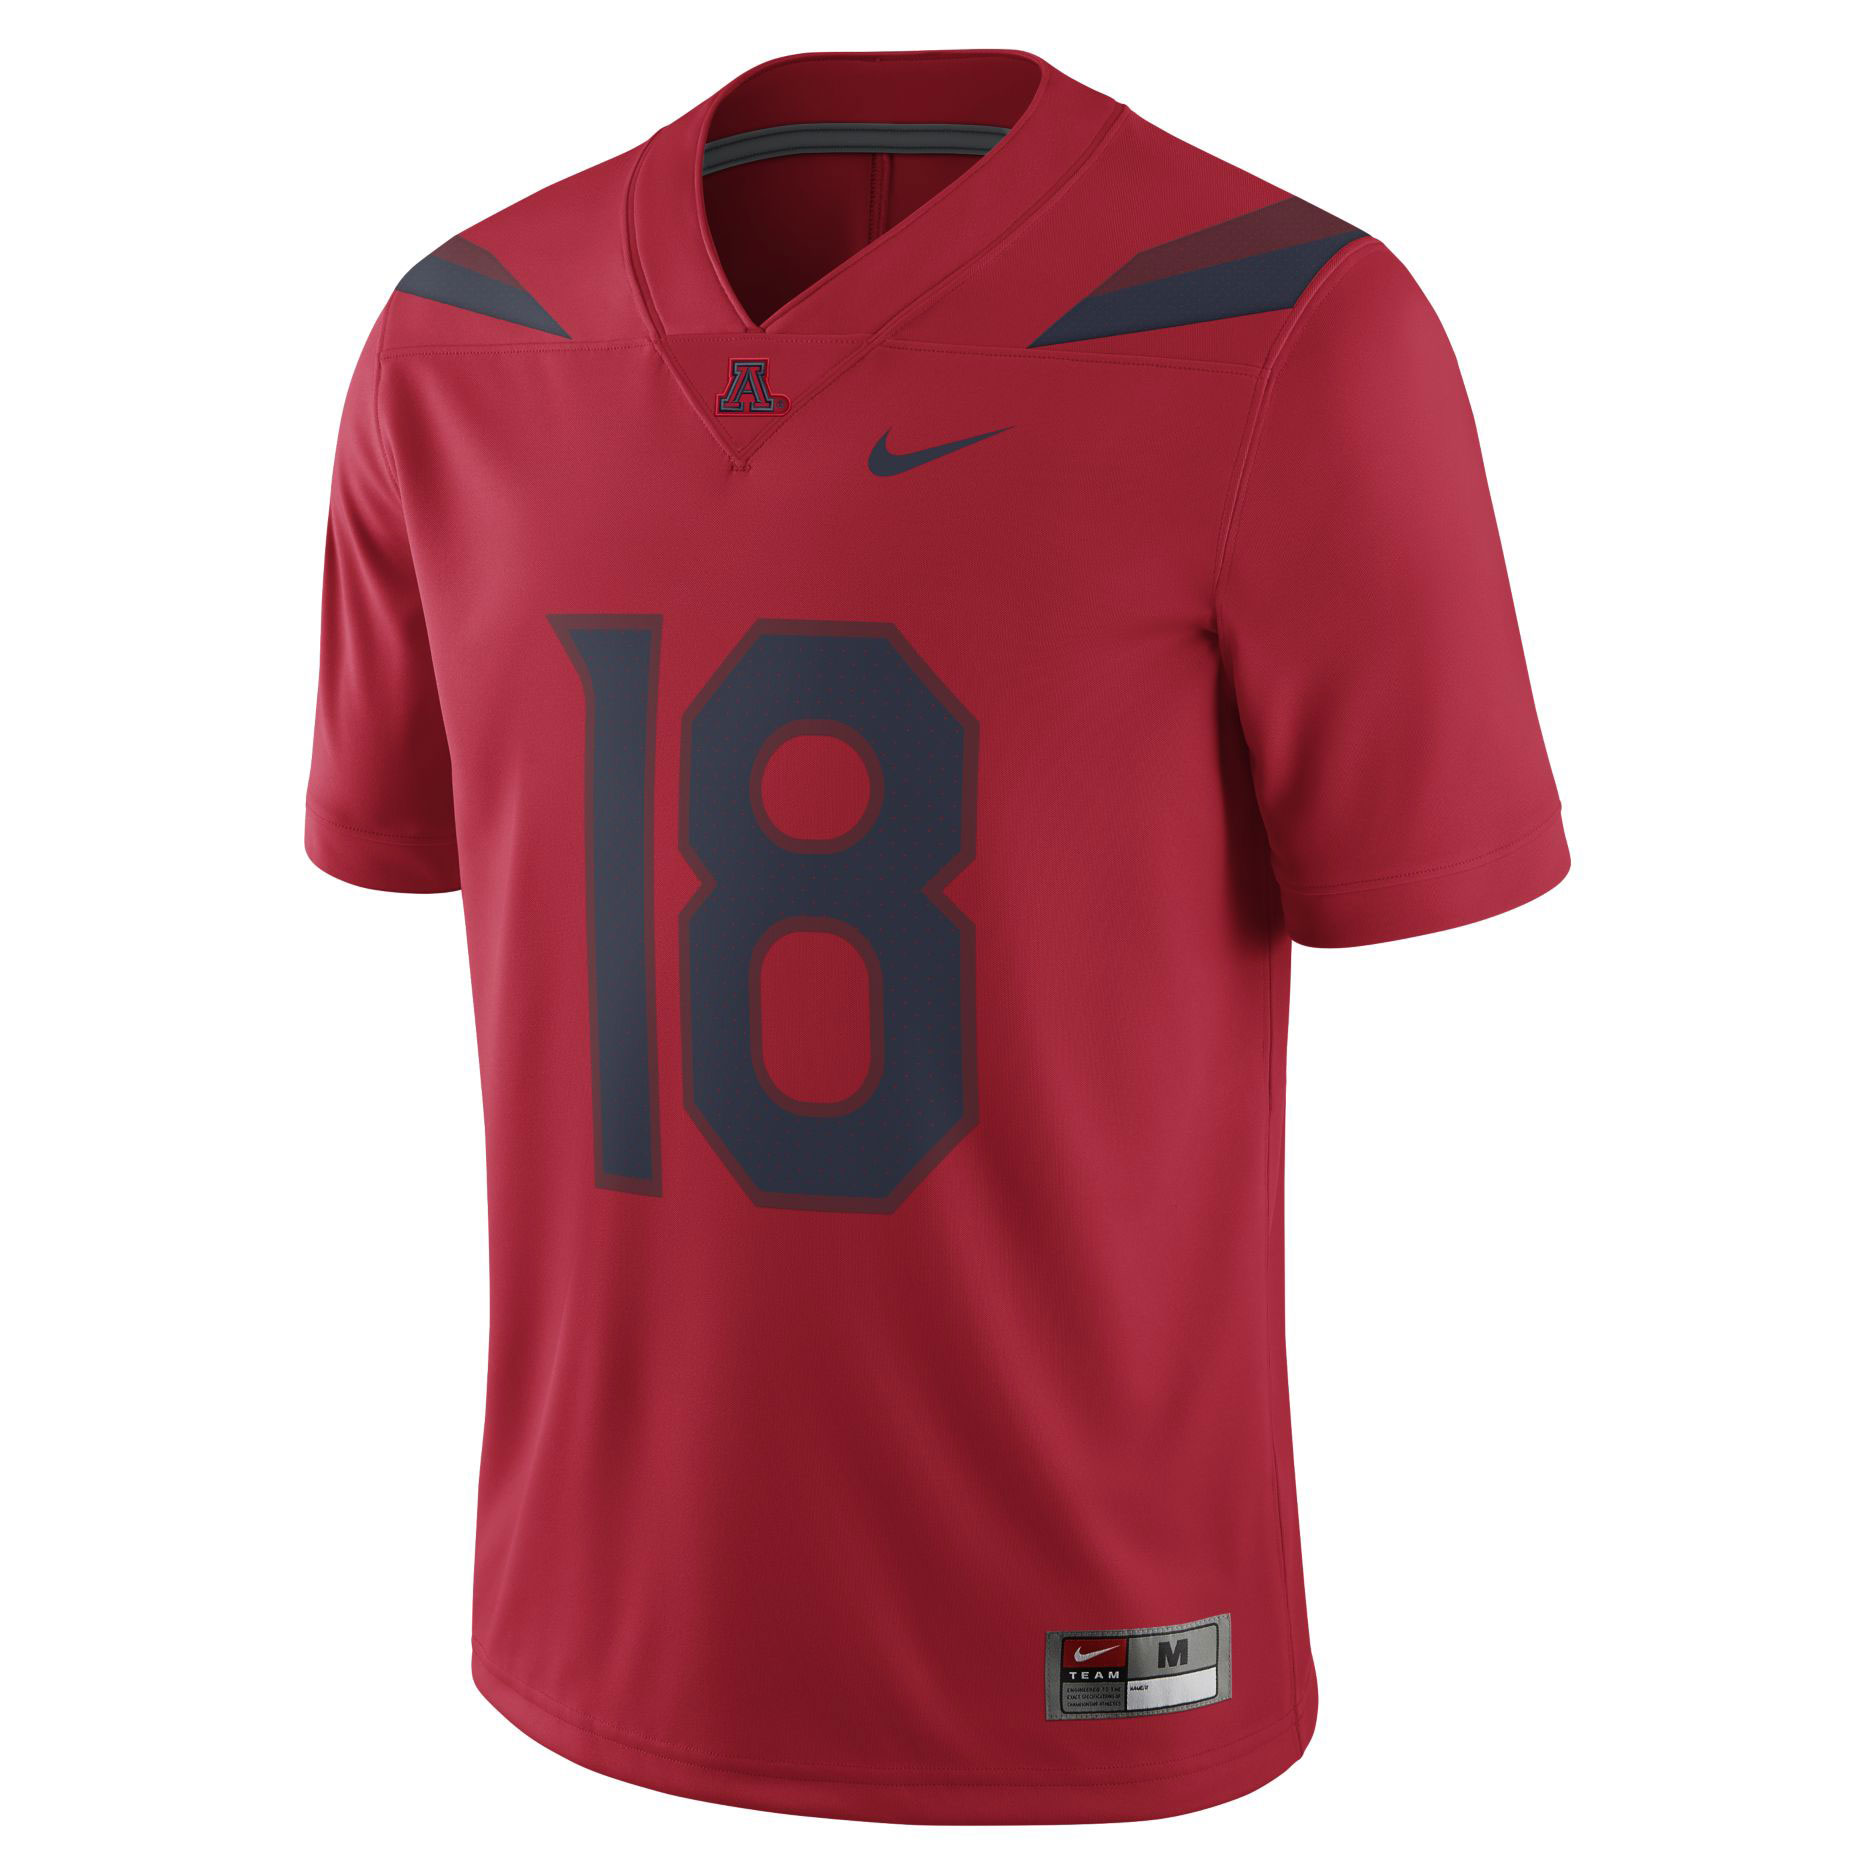 d272cfe4e Image For Nike: Arizona Wildcats #18 Game Football Jersey